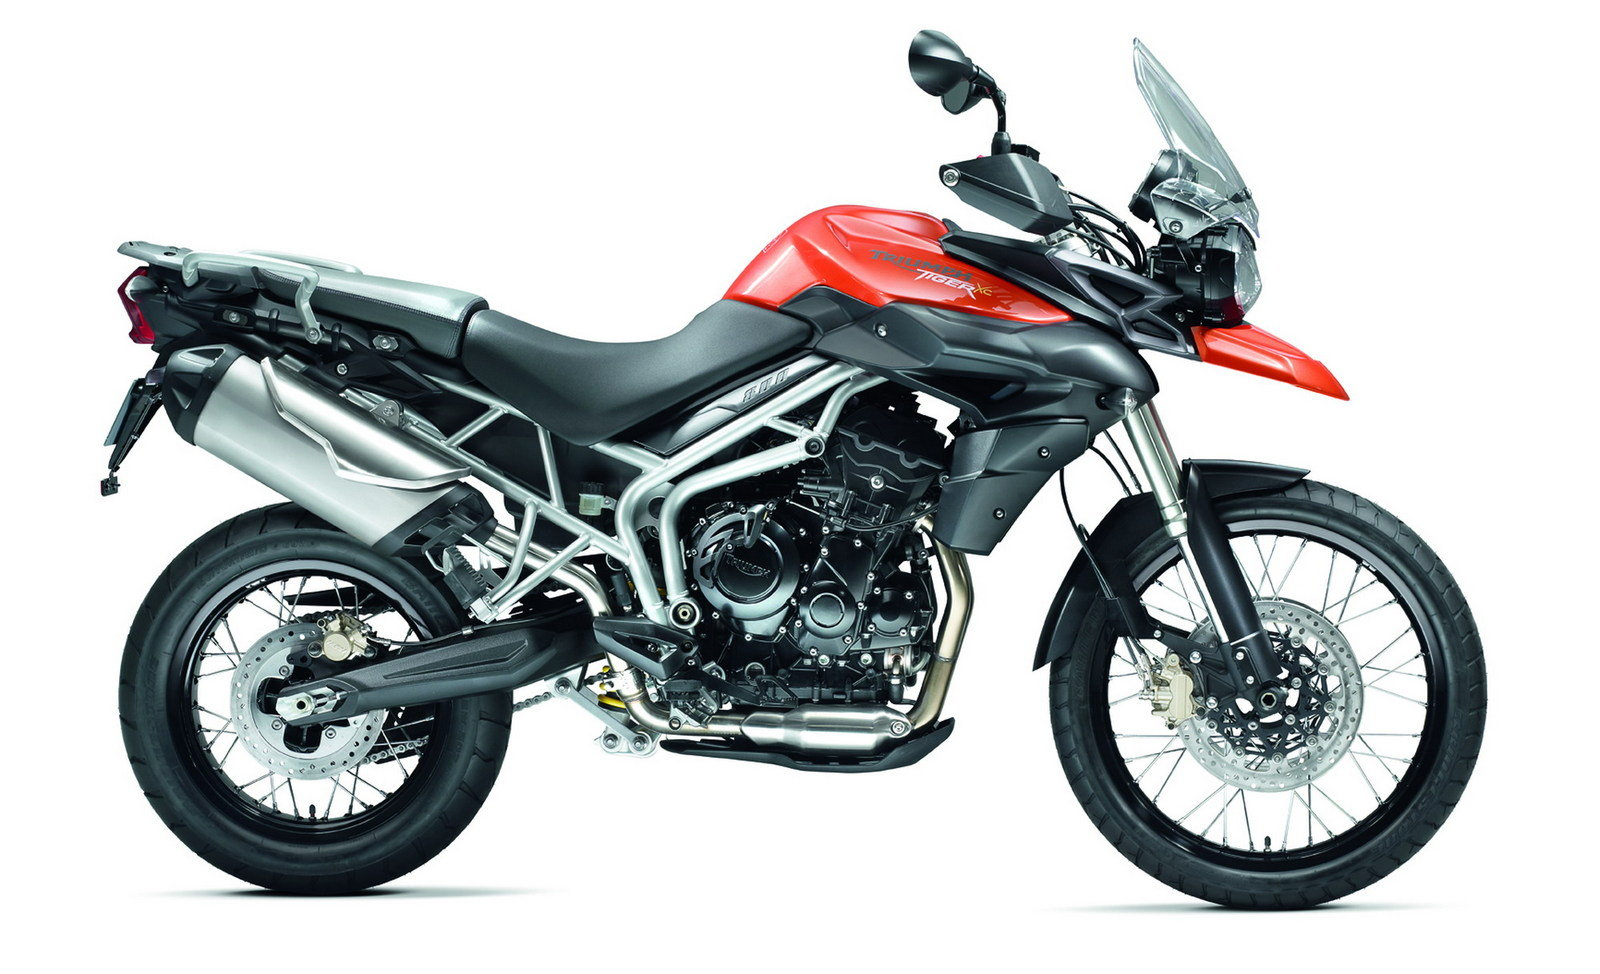 Used Triumph Tiger 800 XC ABS 2015 For Sale ⋆ Motorcycles R Us